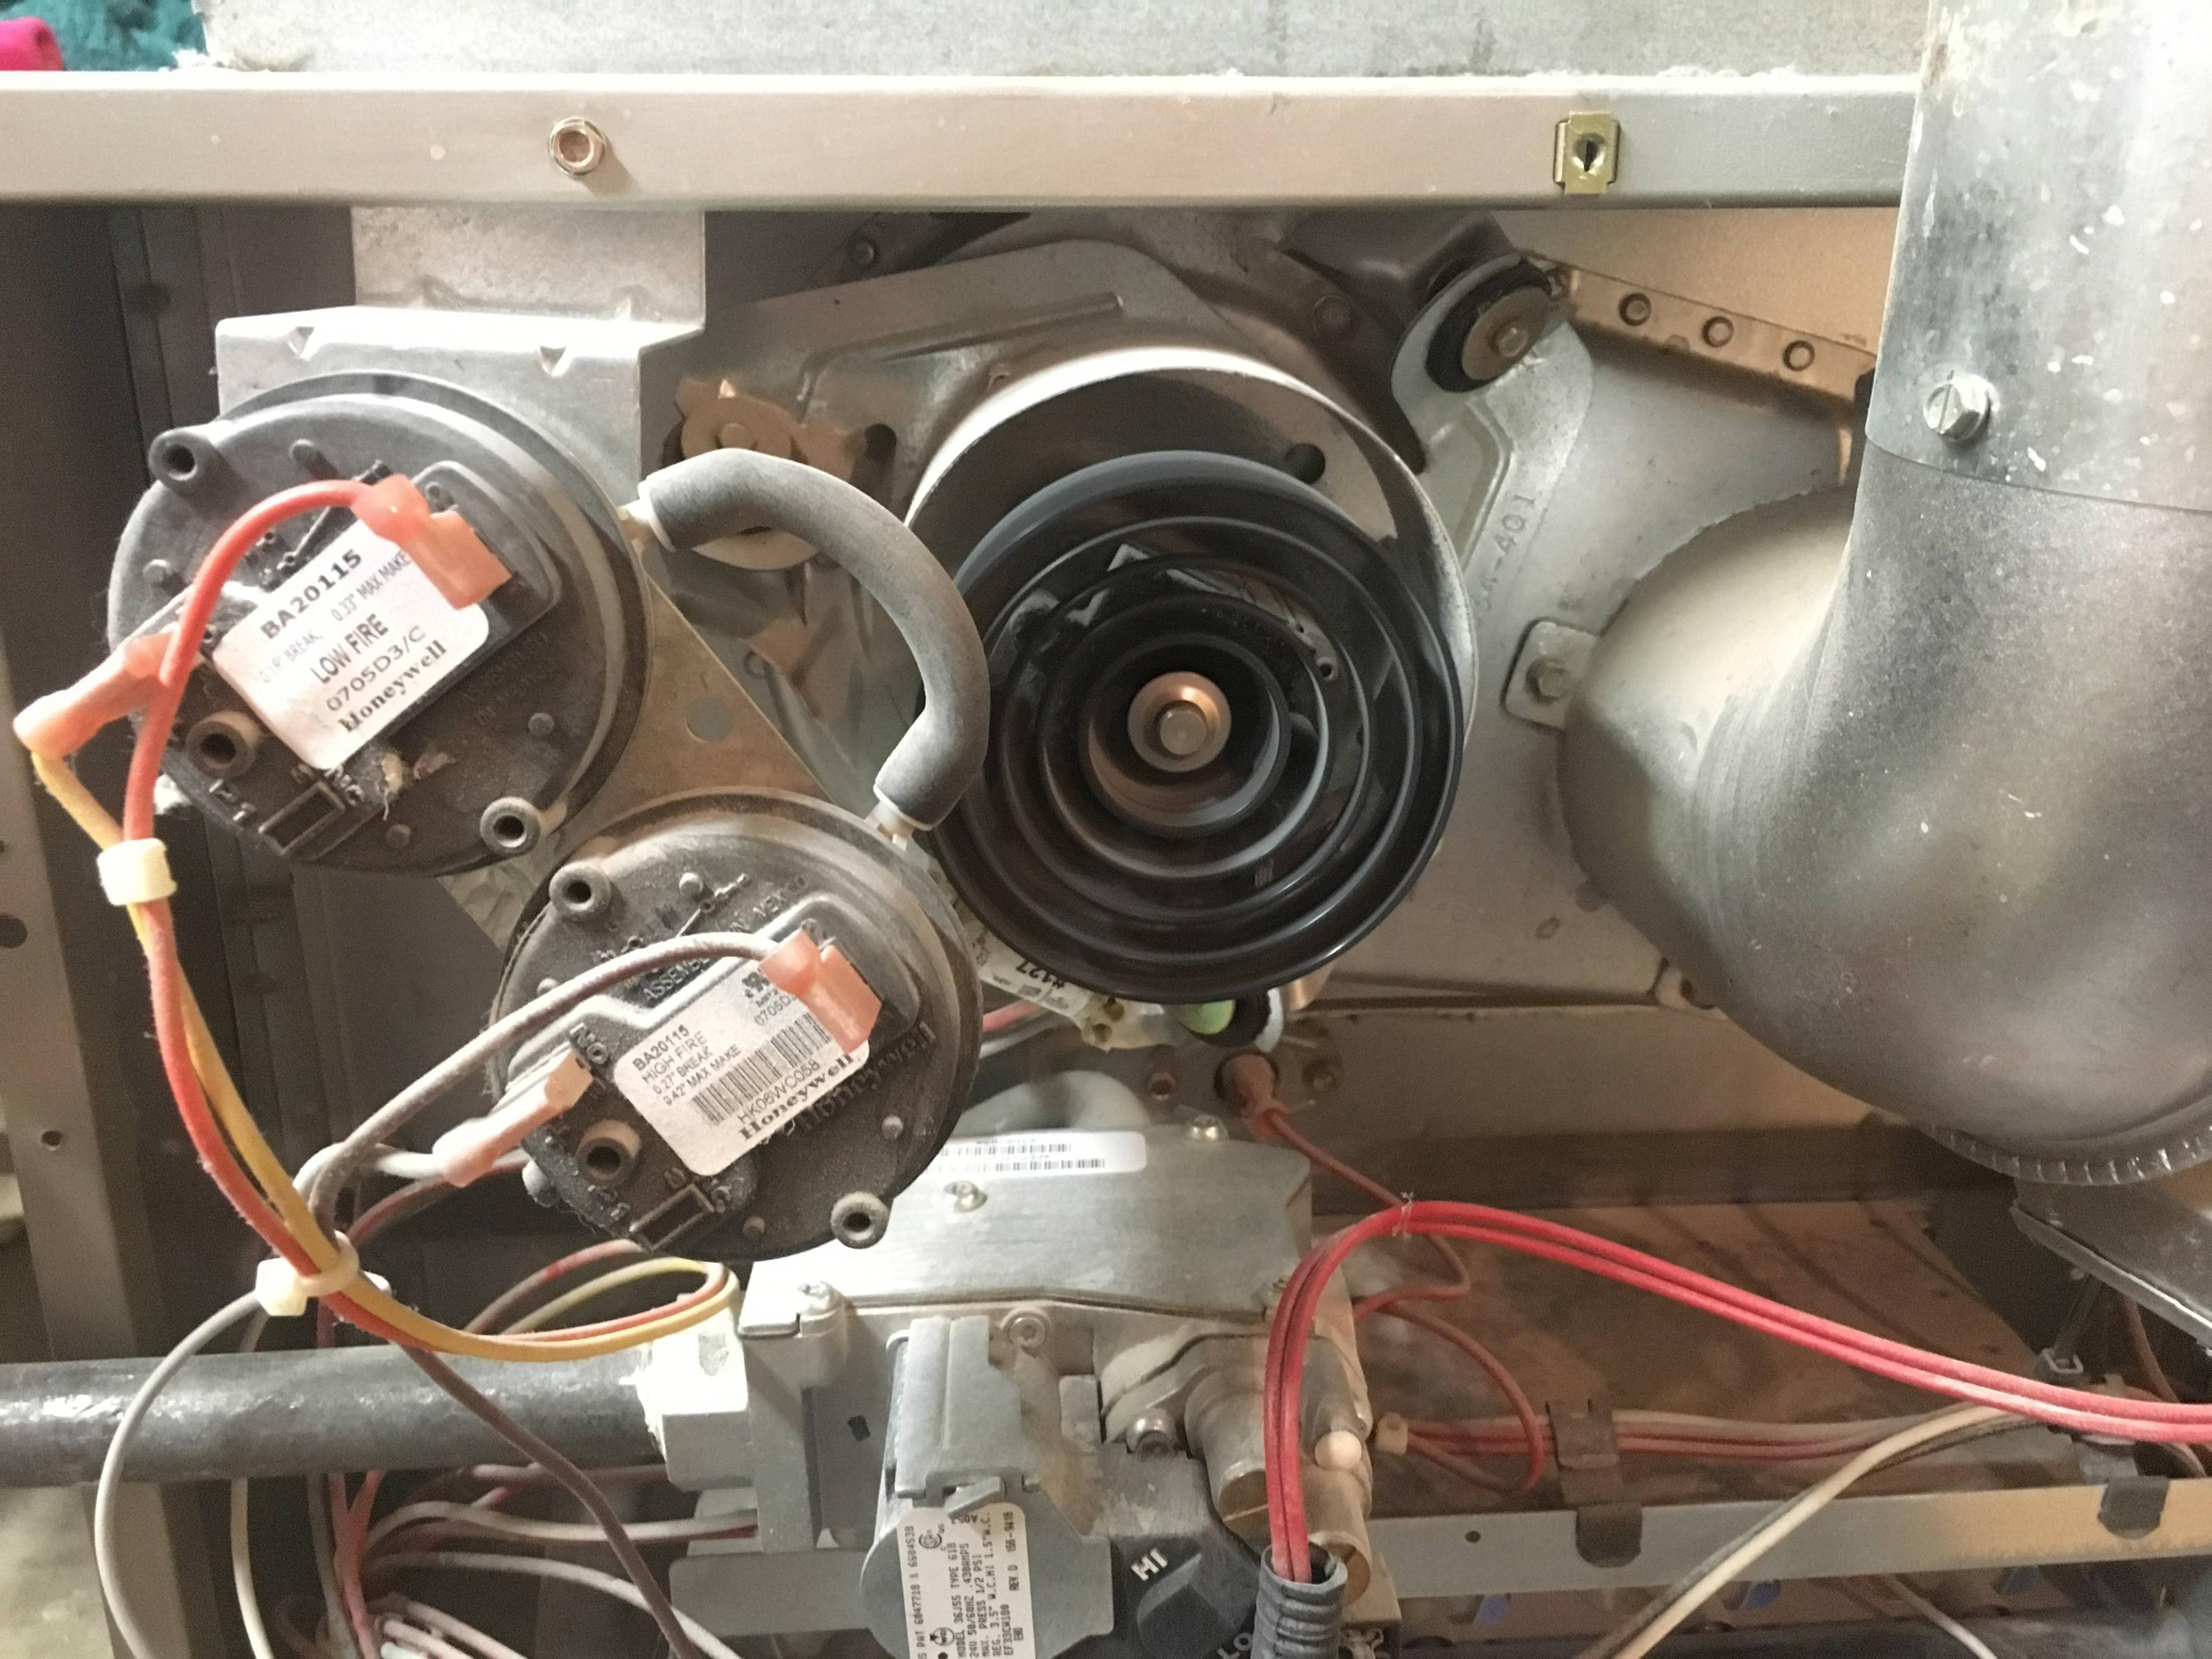 furnace blower humming when off 24 volt wiring diagram for trolling motor fan intermittent high pitch sound home improvement stack small